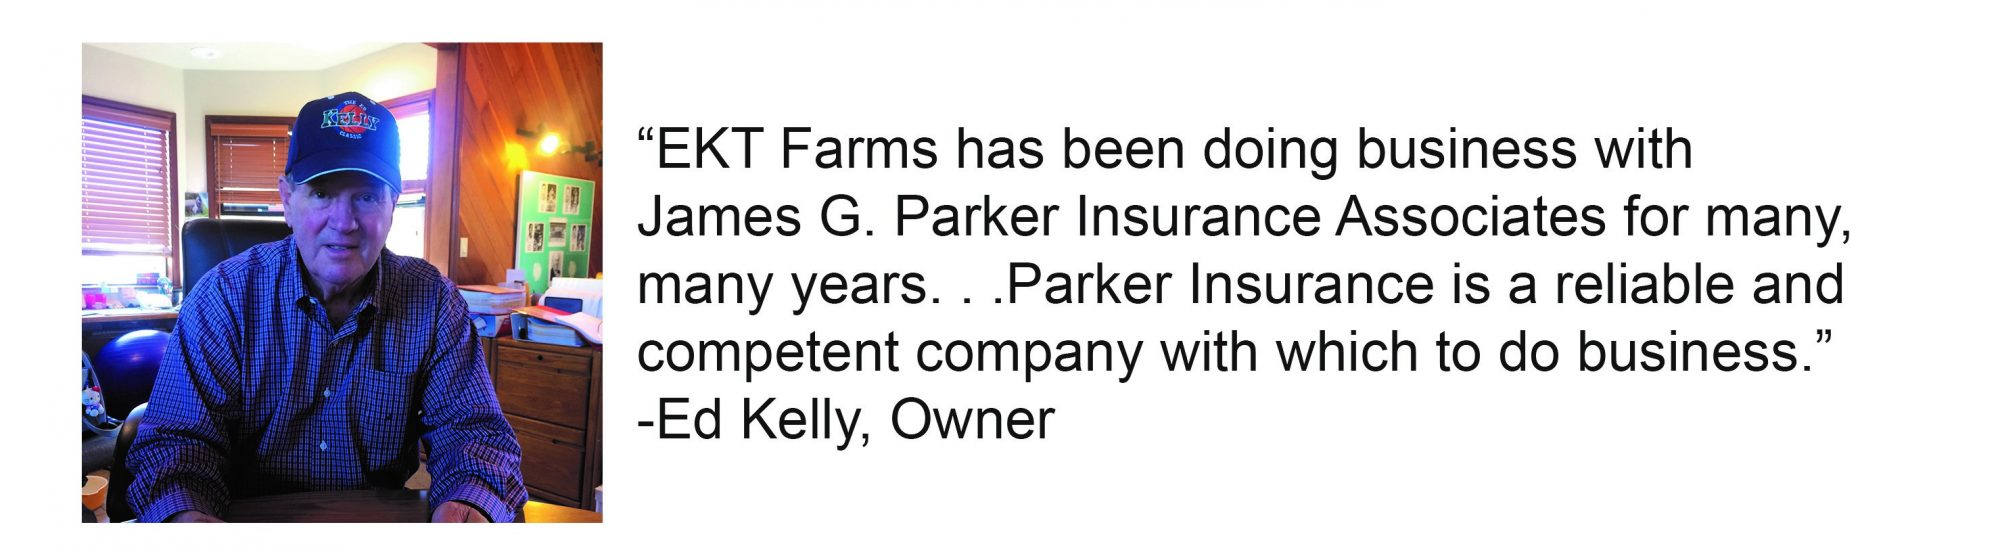 Testimonials Homepage EKT Farms